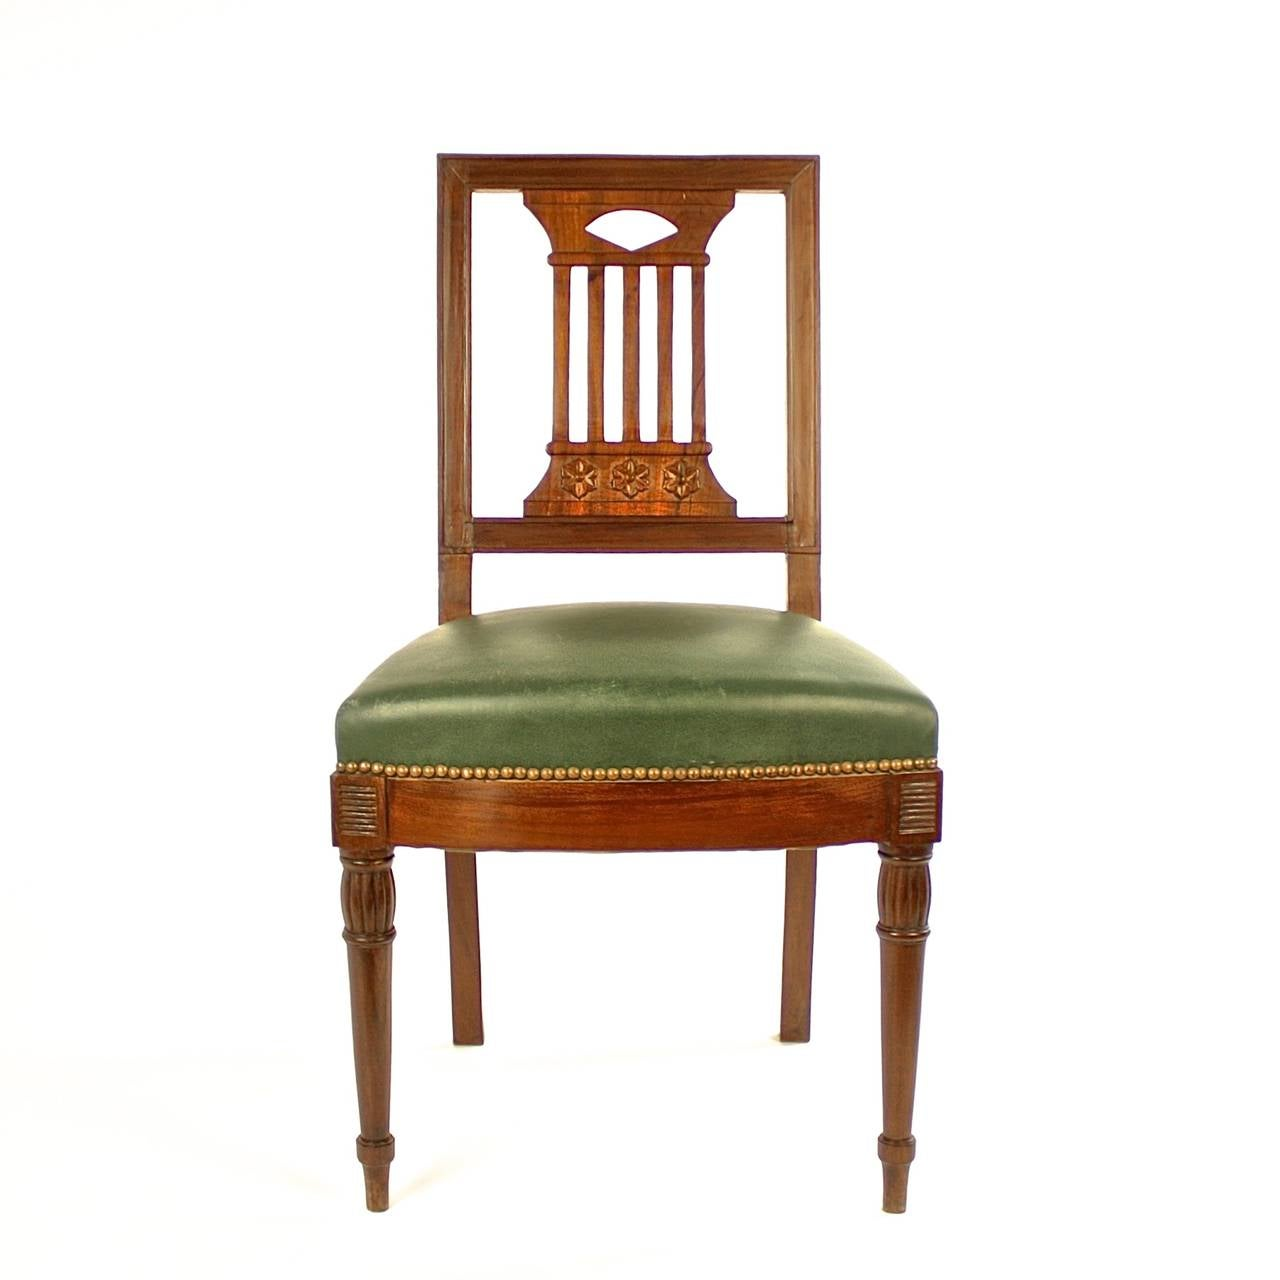 Pair of early 19th century mahogany side chairs in the manner of Bellange frere. Raised on turned tapering front legs and sabre rear legs, carved with pierced splades in the shape of a pilaster and adorned with carved paterae, upholstered with dark